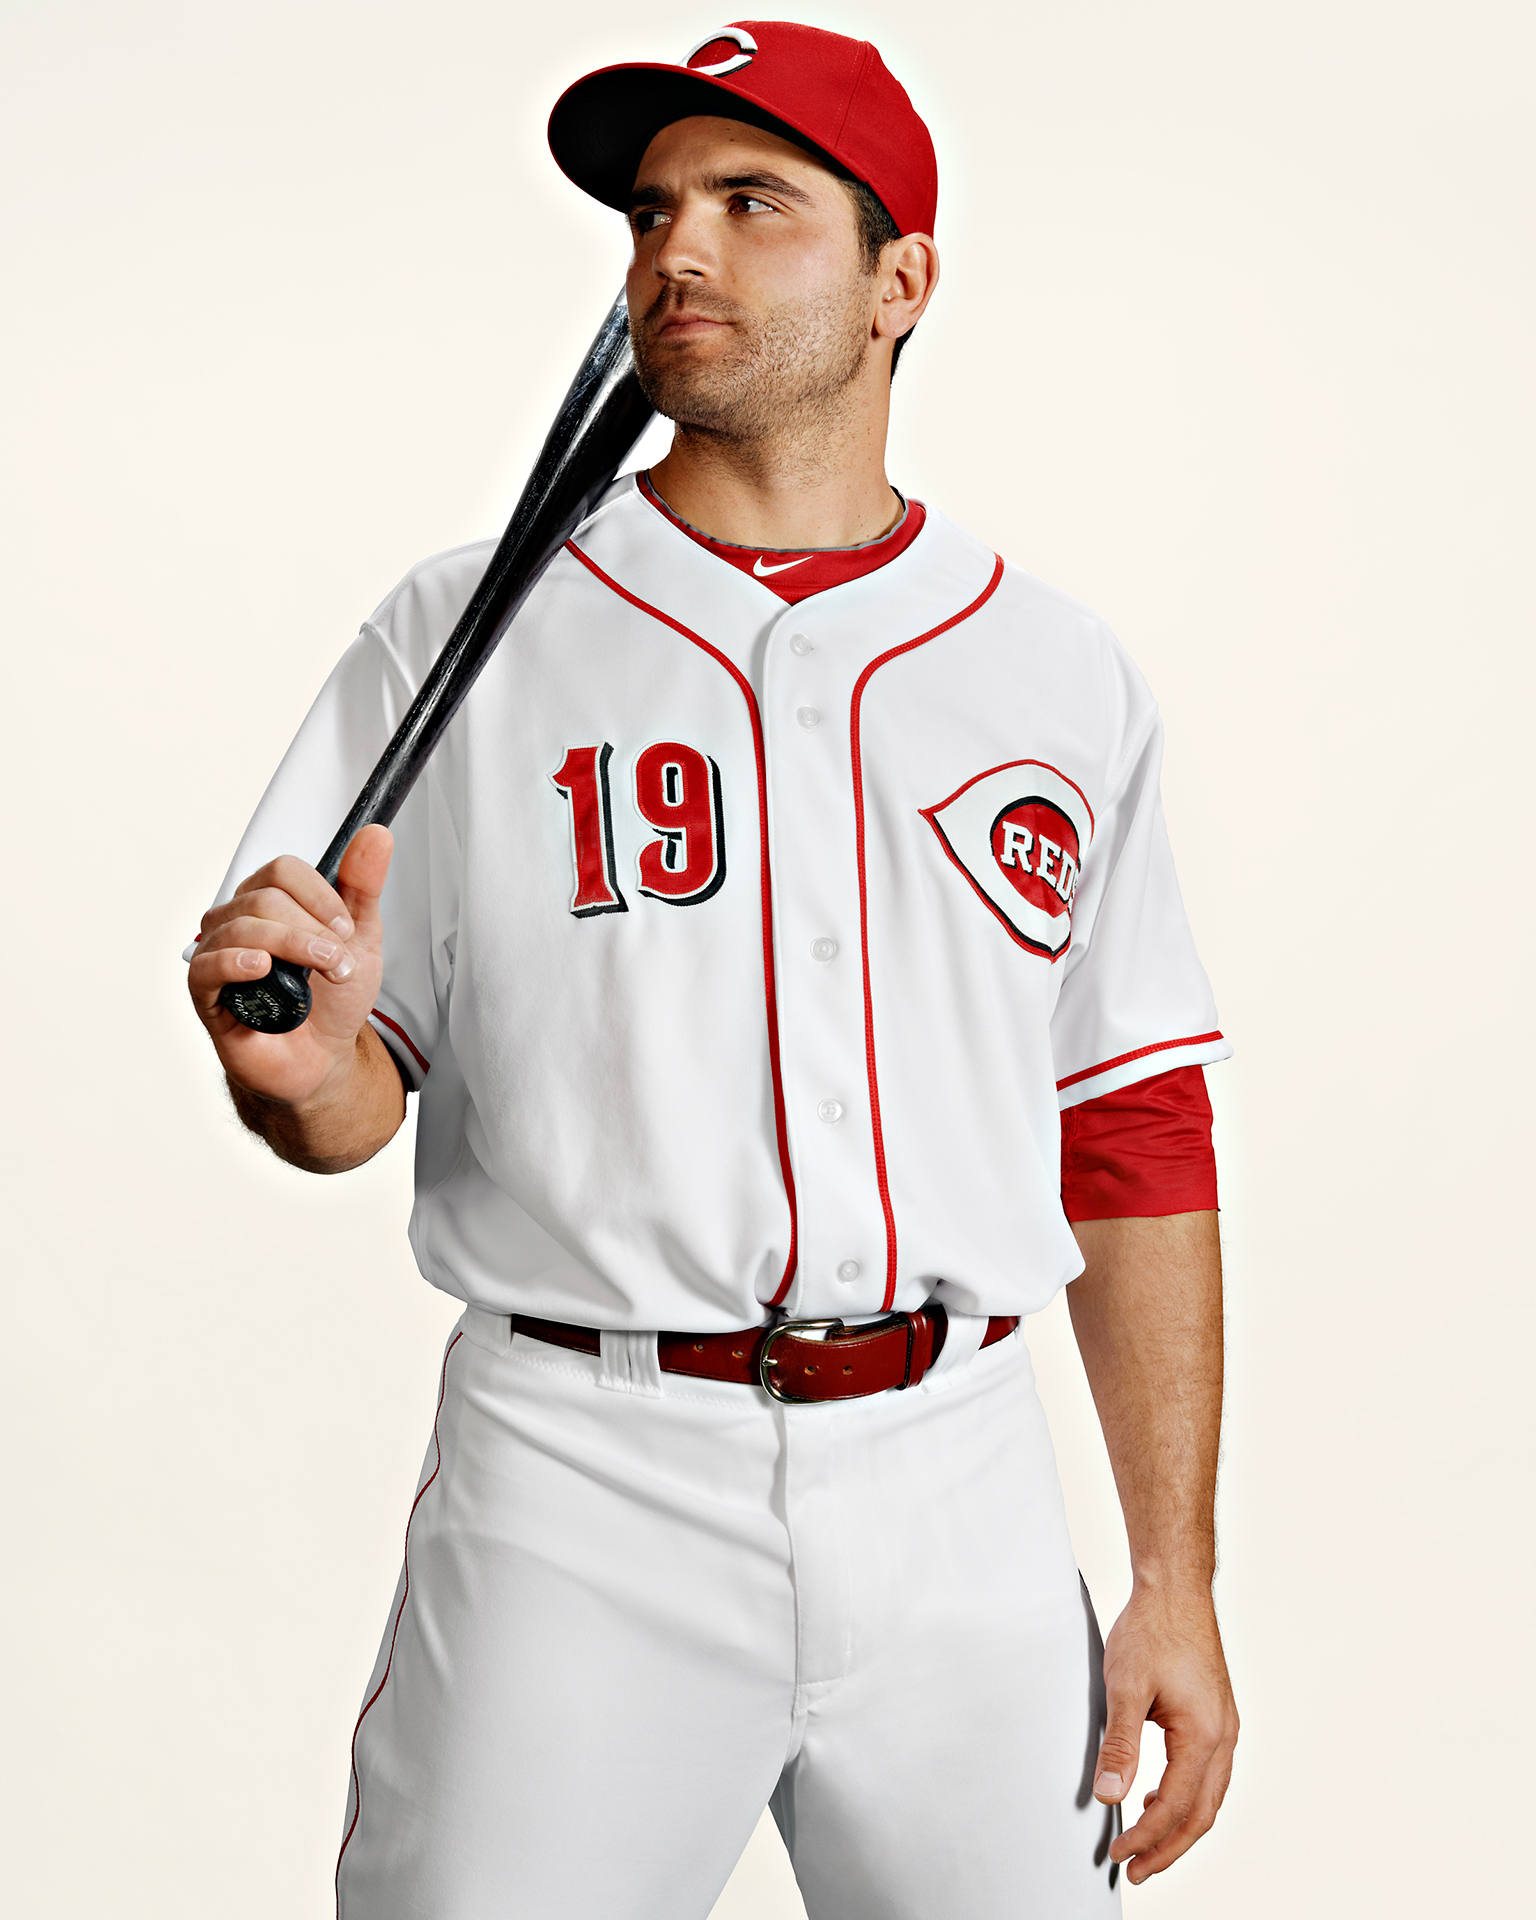 25eda7f93f9 Ranking all the uniforms of Major League Baseball.